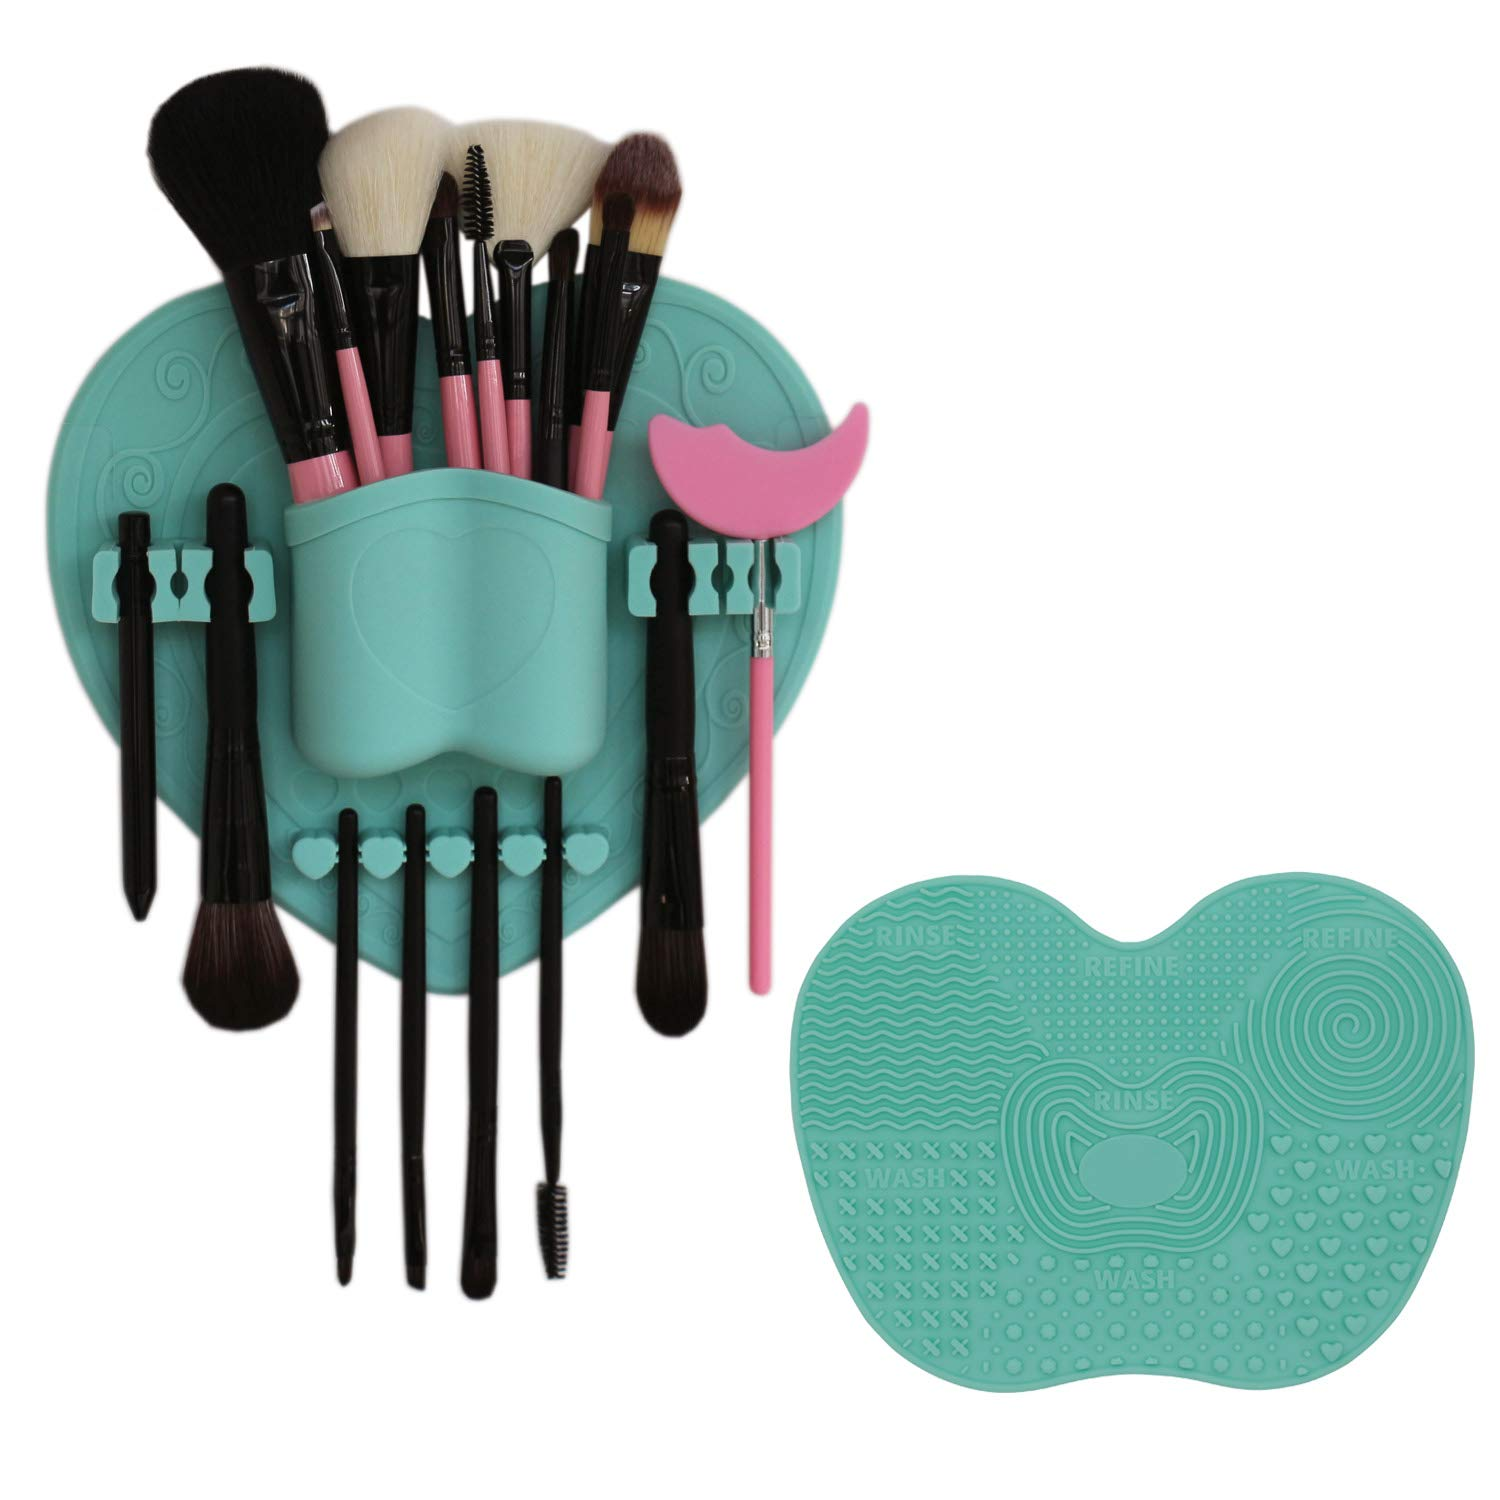 LORMAY Silicone Makeup Brush Organizer + Makeup Brush Cleaning Mat - Makeup Brush Holder for Air Drying. Easy to Mount to Wall,Mirror, Dresser or Tile (Mint Green)